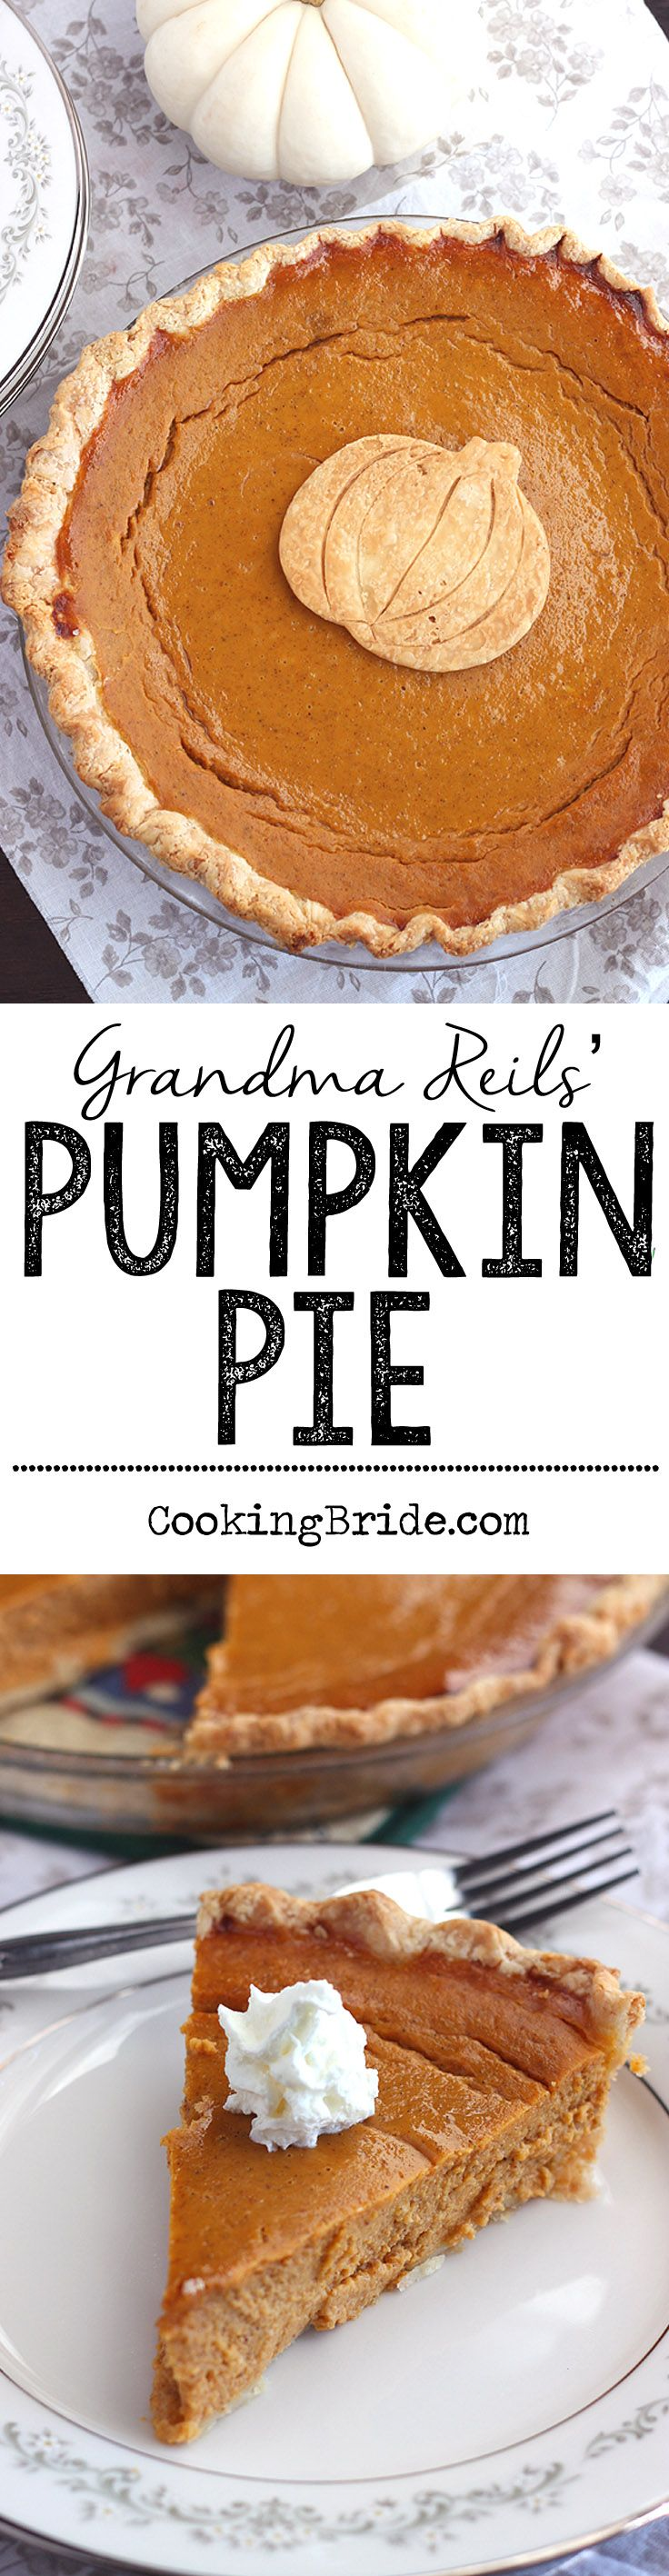 This super easy, traditional pumpkin pie recipe will be a hit on your Thanksgiving dessert table.